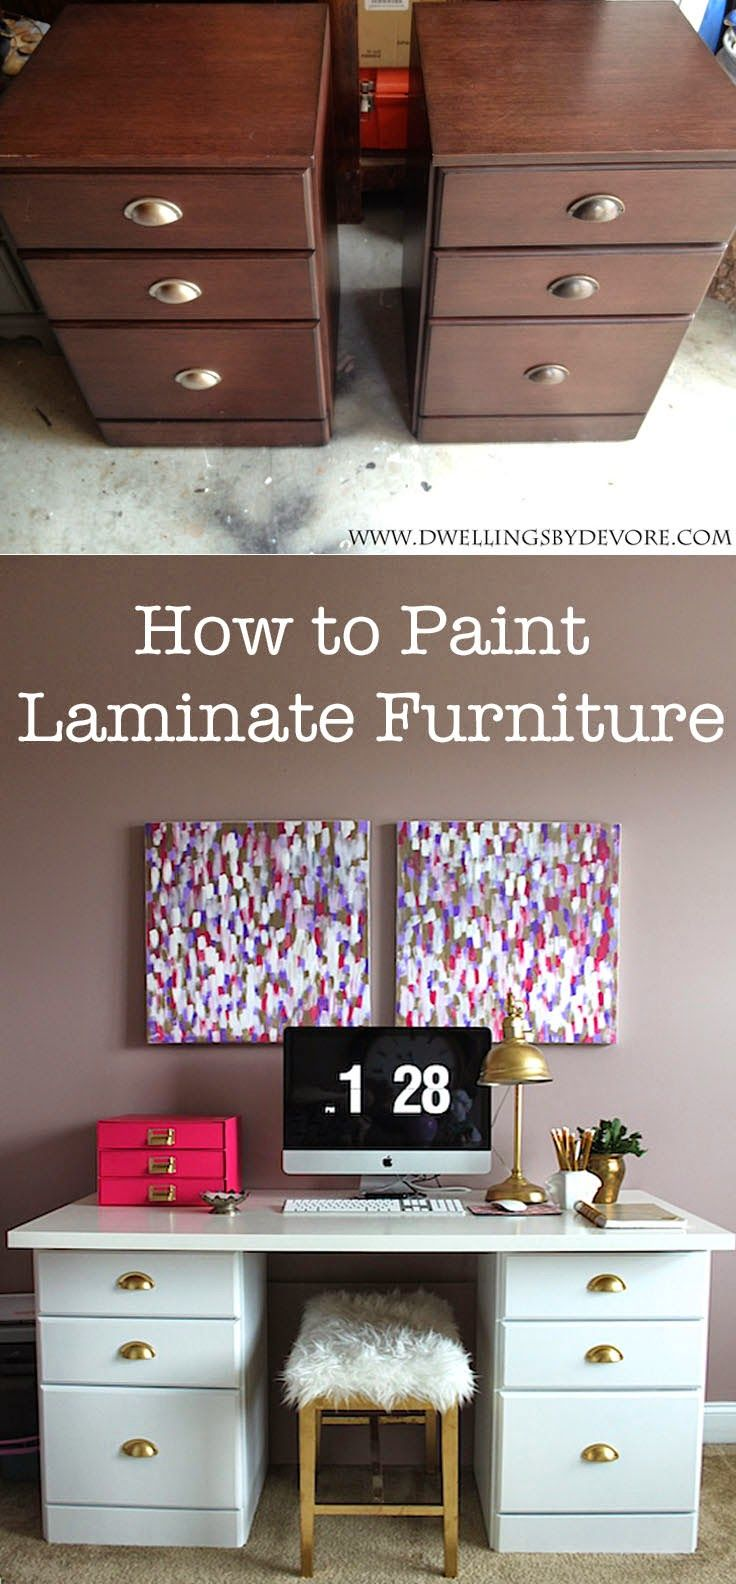 how to paint laminate furniture @kilzpaintandprimer